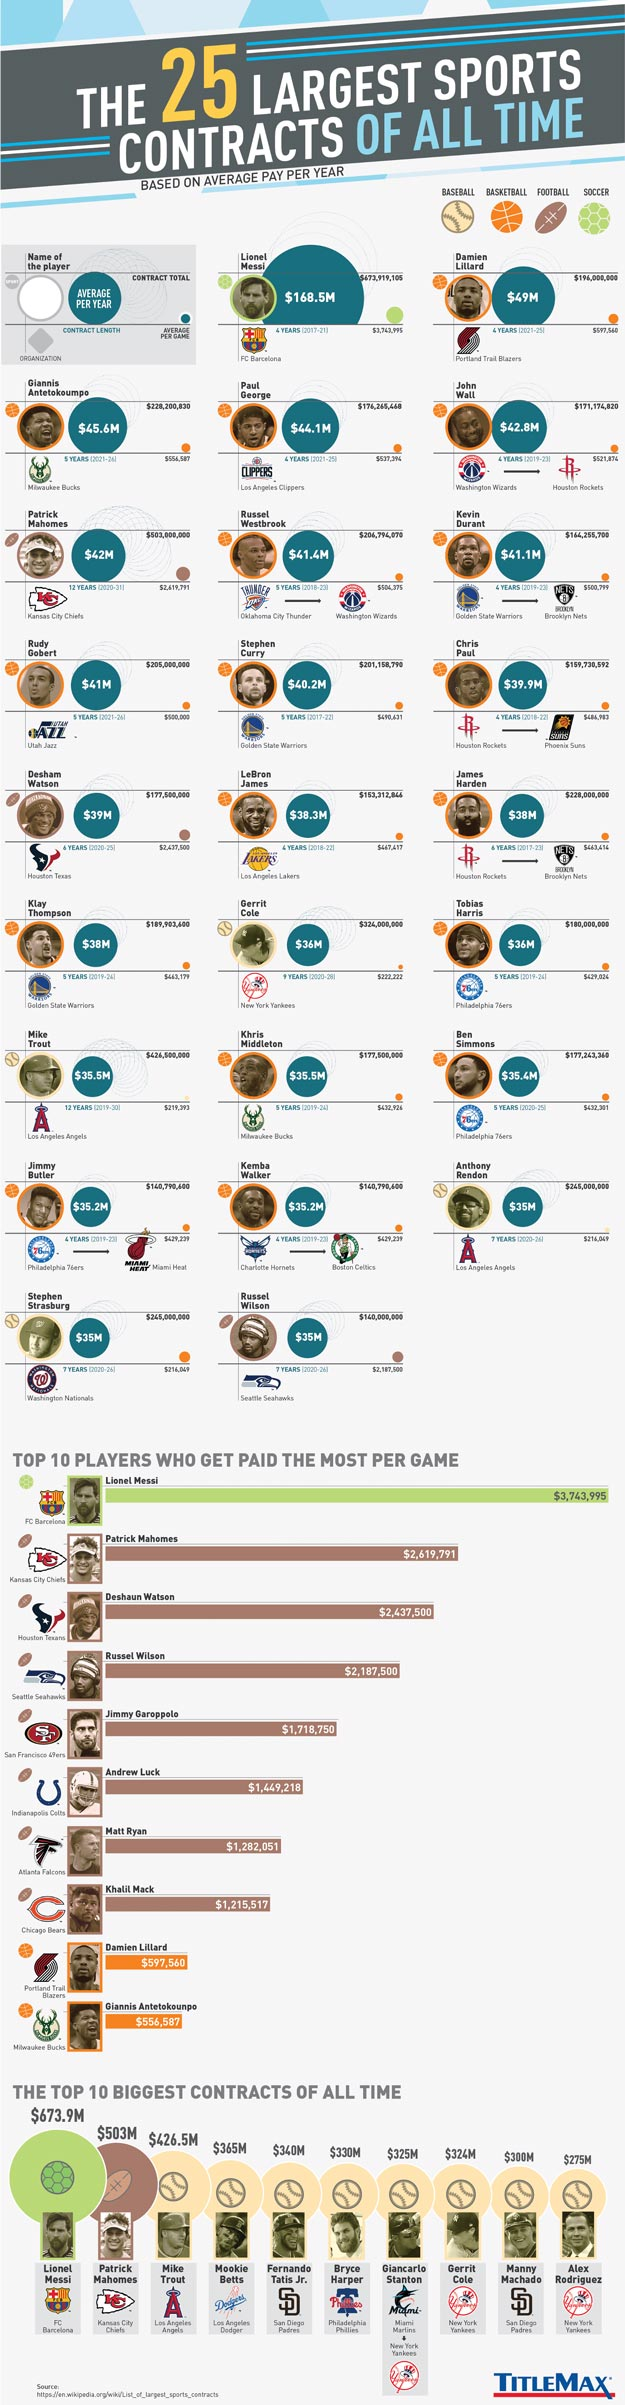 Infographic for The 25 Largest Sports Contracts of All Time